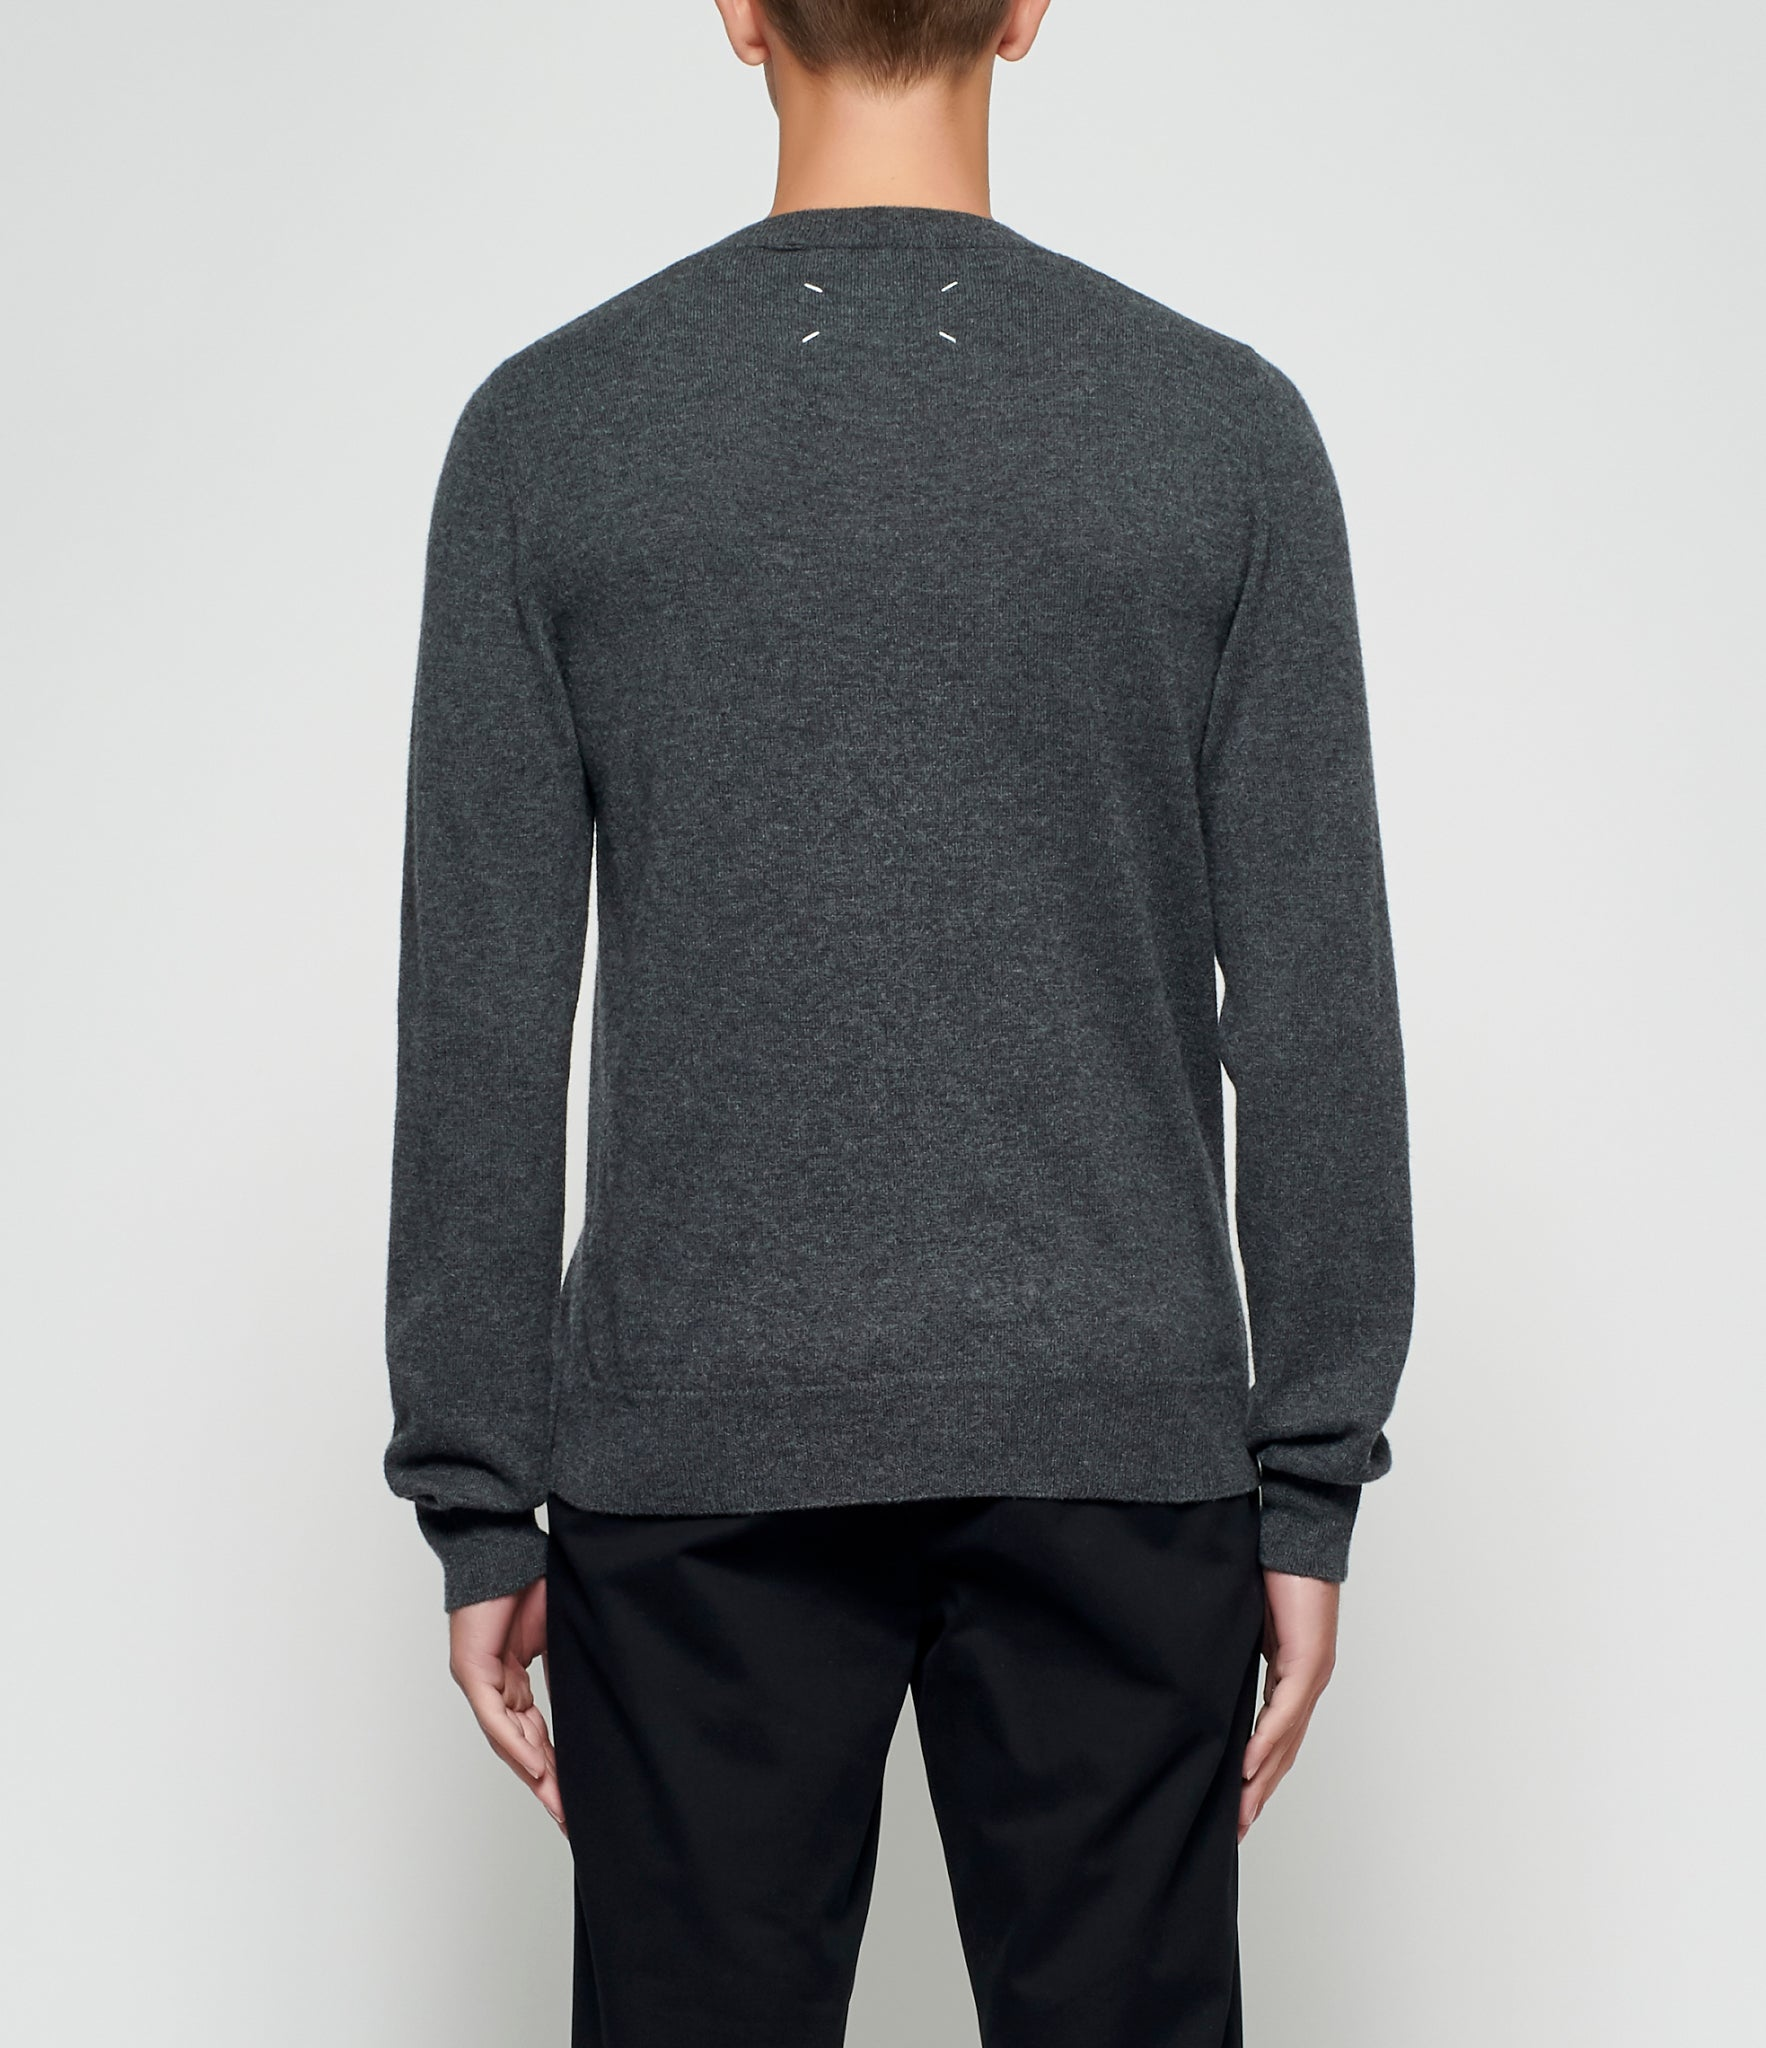 Maison Margiela Distressed Charcoal Sweater